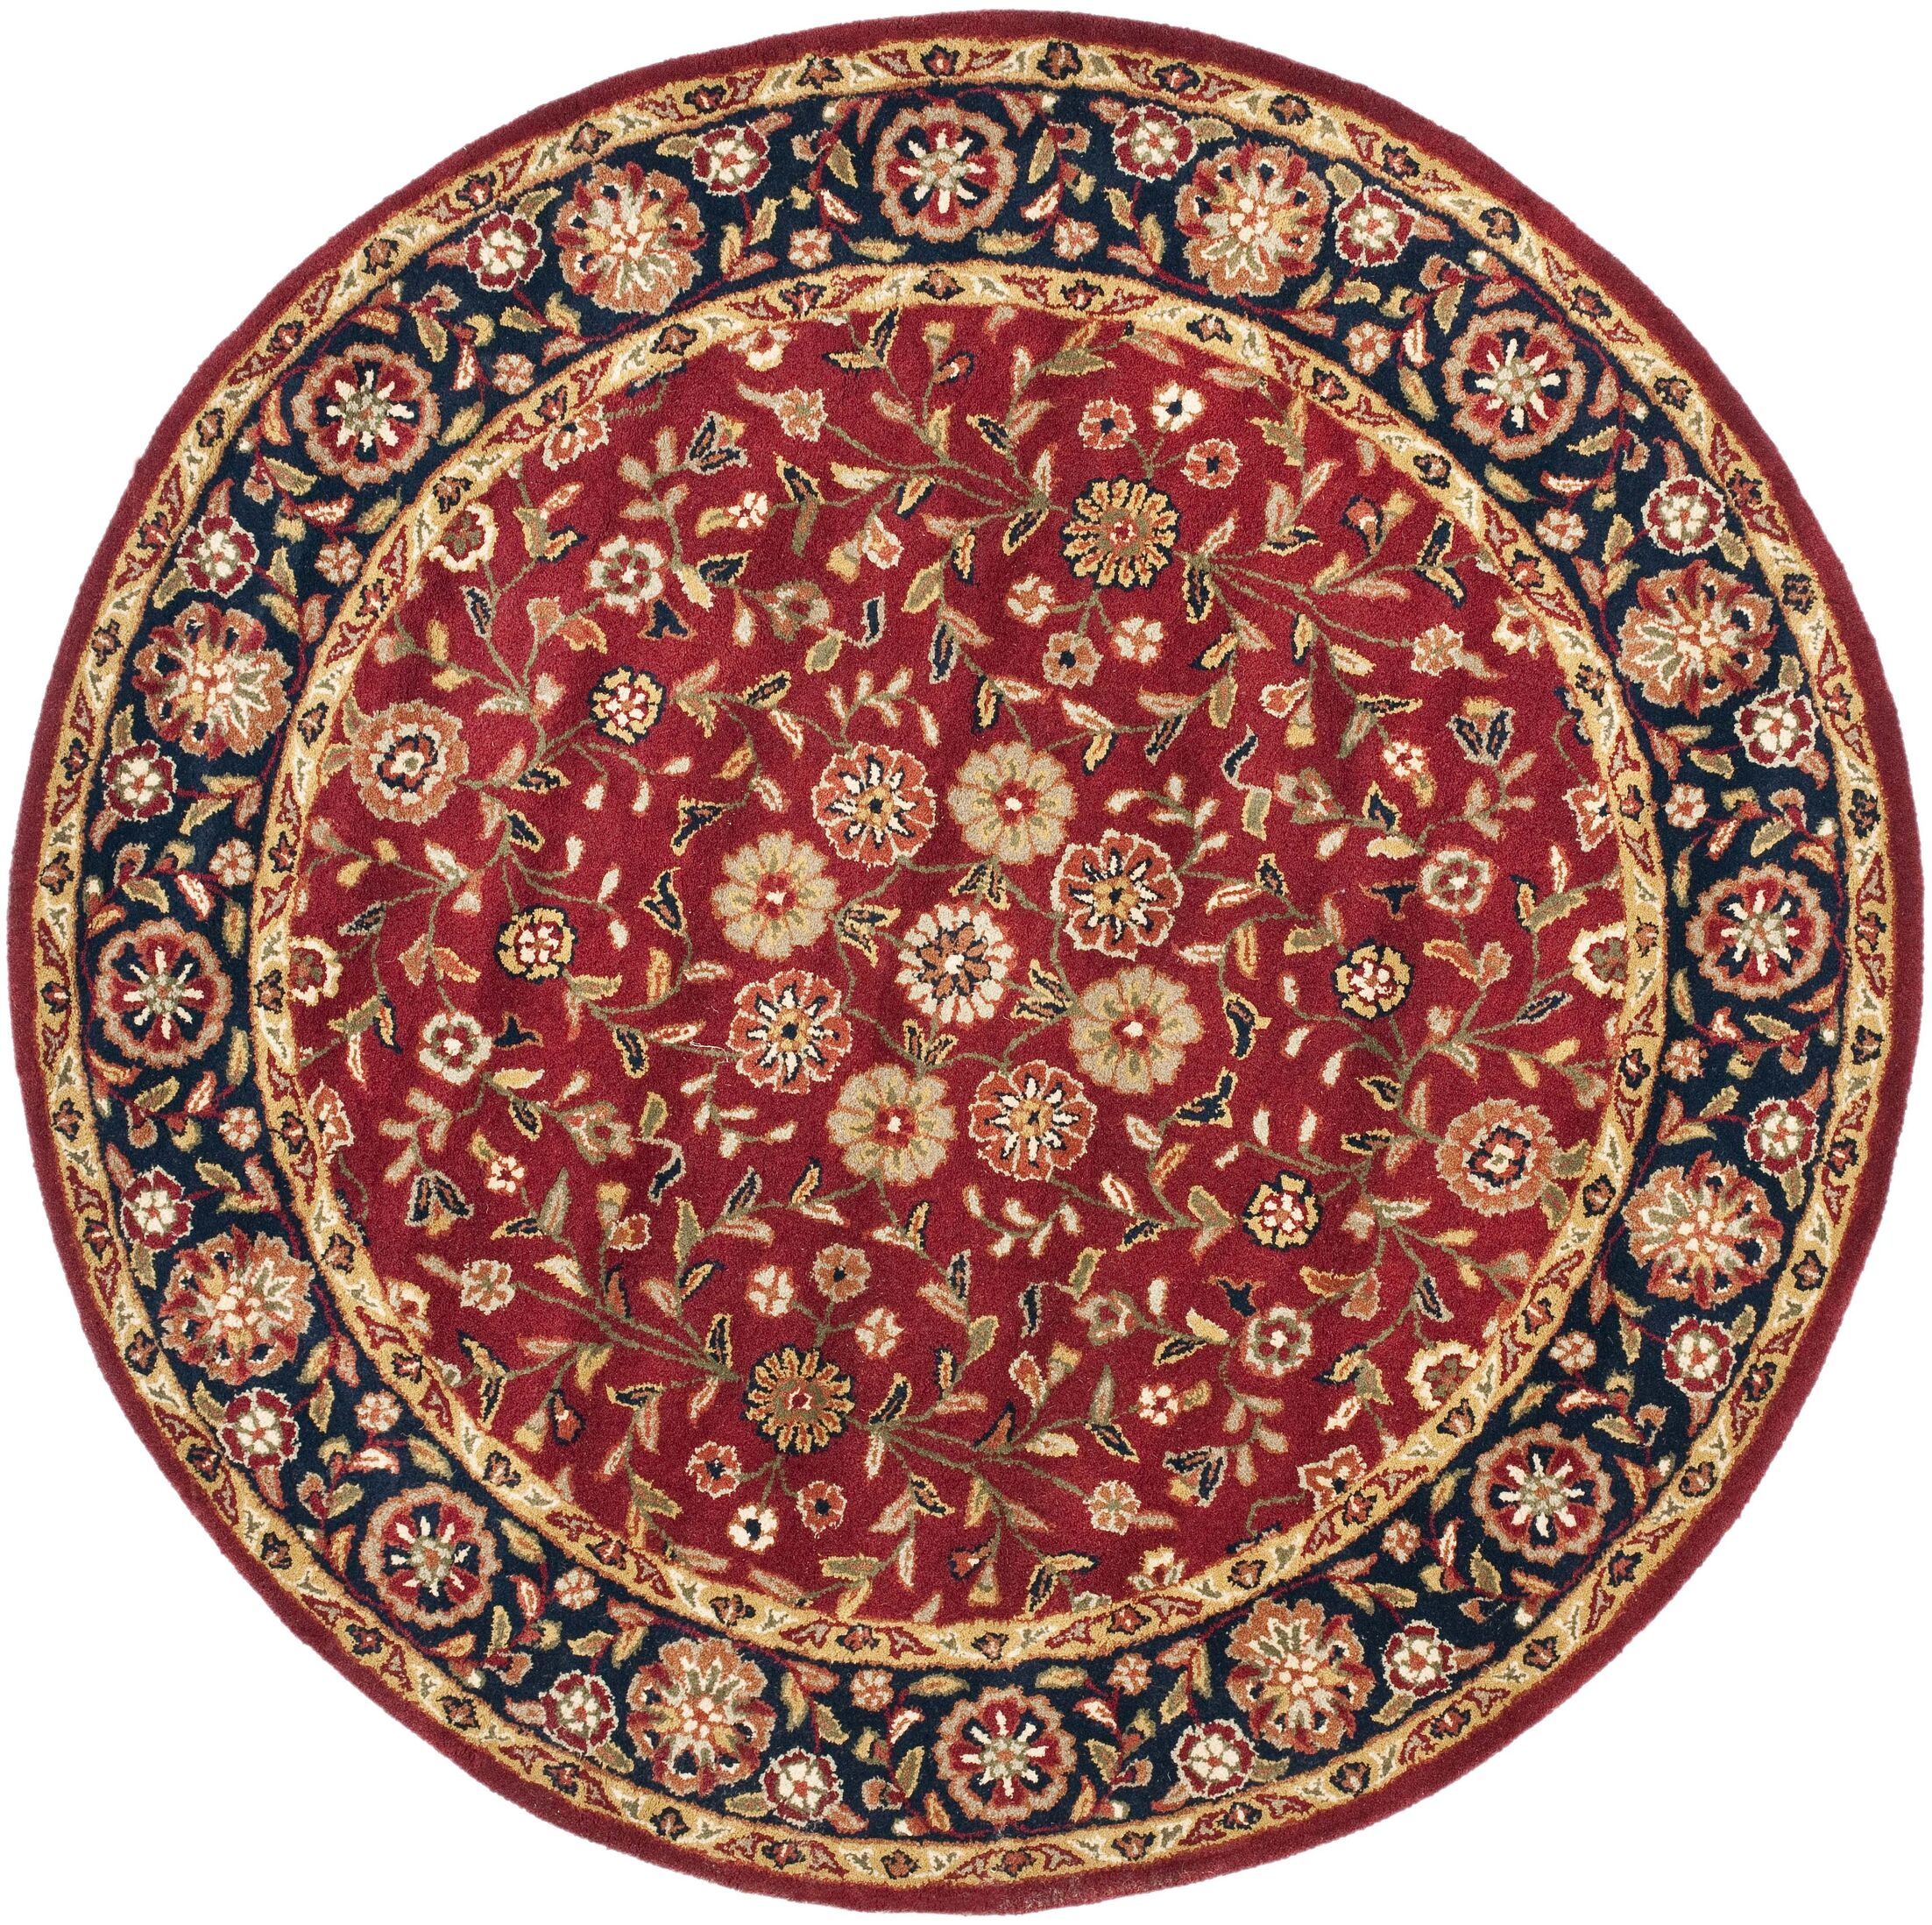 Cranmore Red/Black Floral Area Rug Rug Size: Round 6'